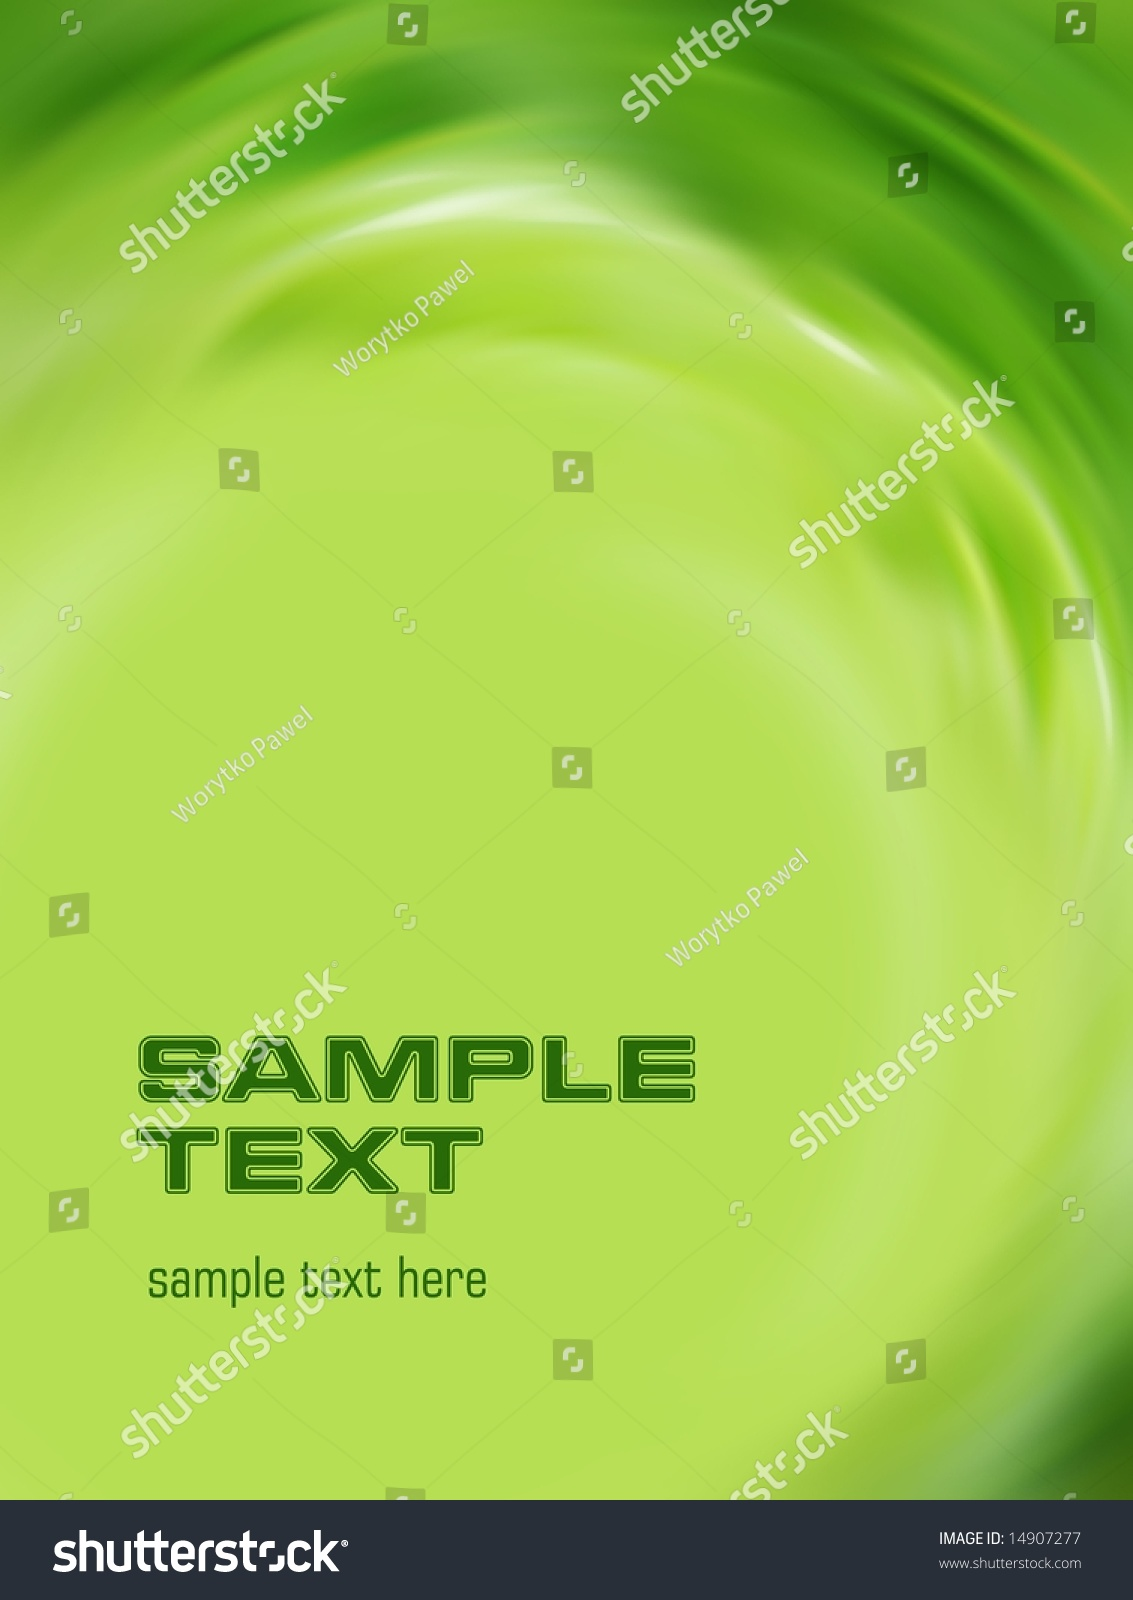 Green background easy remove text stock illustration for Removethebackground com